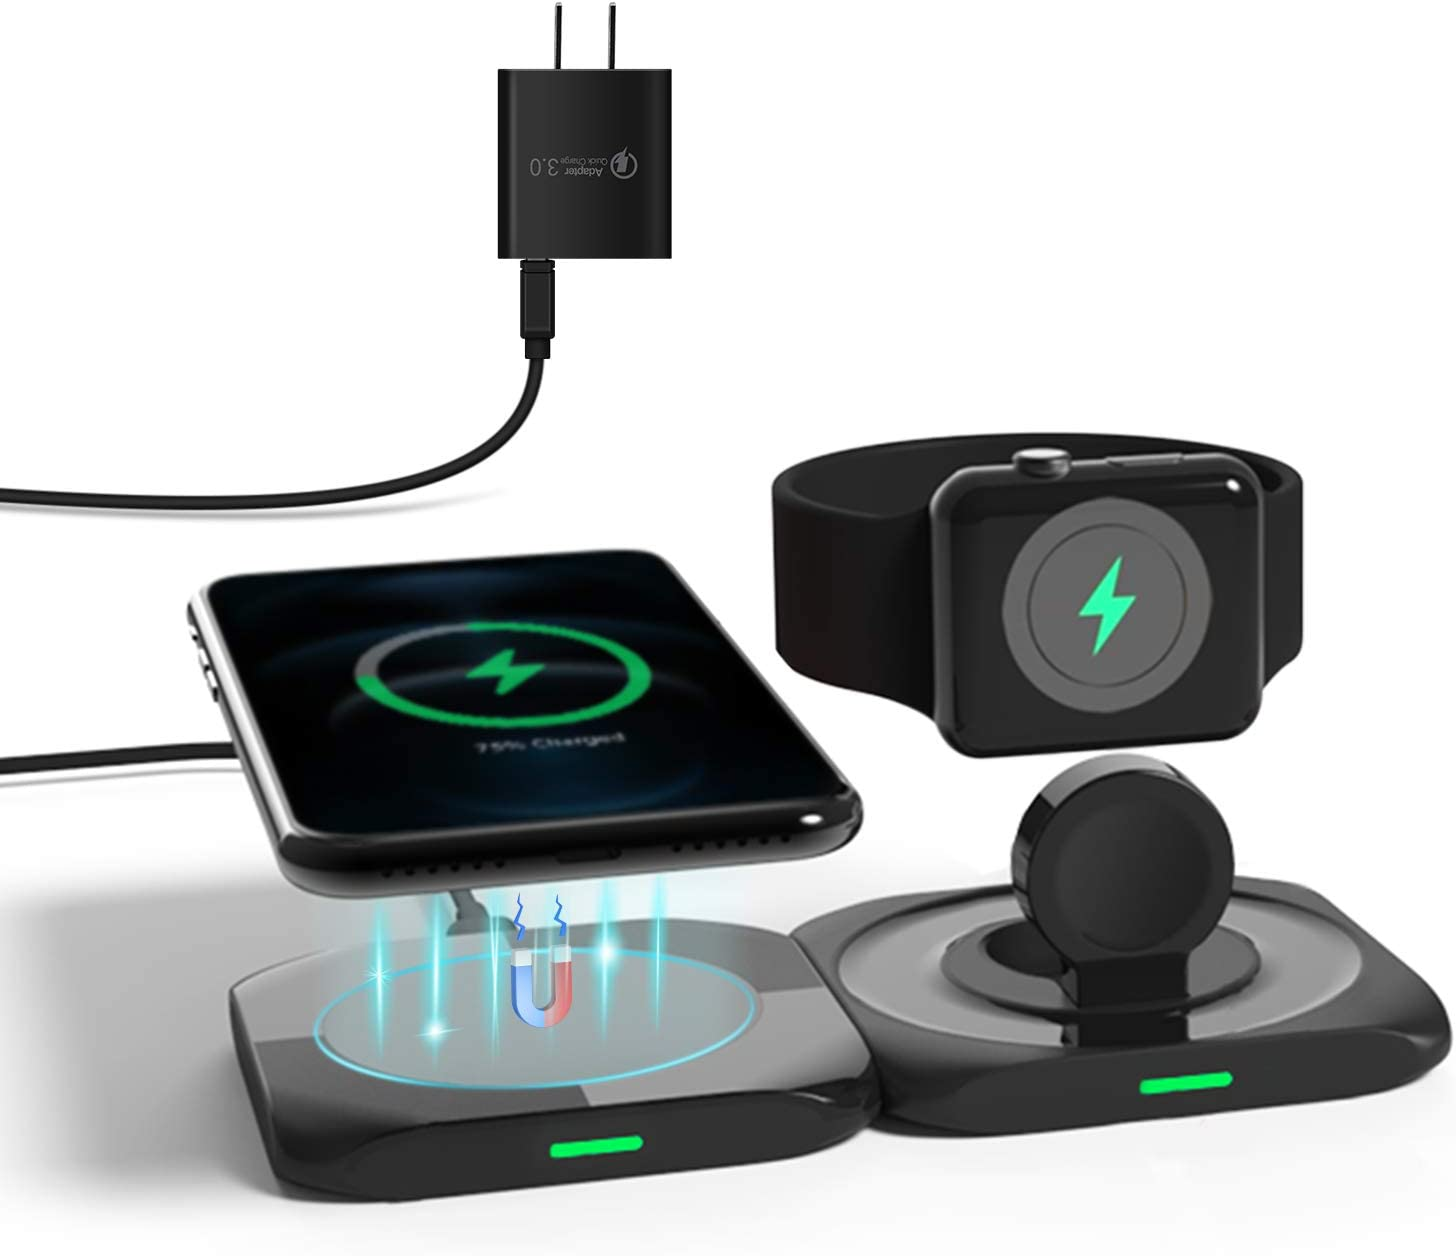 CIVPOWER 3 in 1 Charging Station,Wireless Magsafe Charger Compatible with Apple Watch Series,AirPods 2/Pro,Magnetic Wireless Charging Pad for iPhone 12/Mini/Pro/Pro Max or Qi Devices(with 18W Adapter)